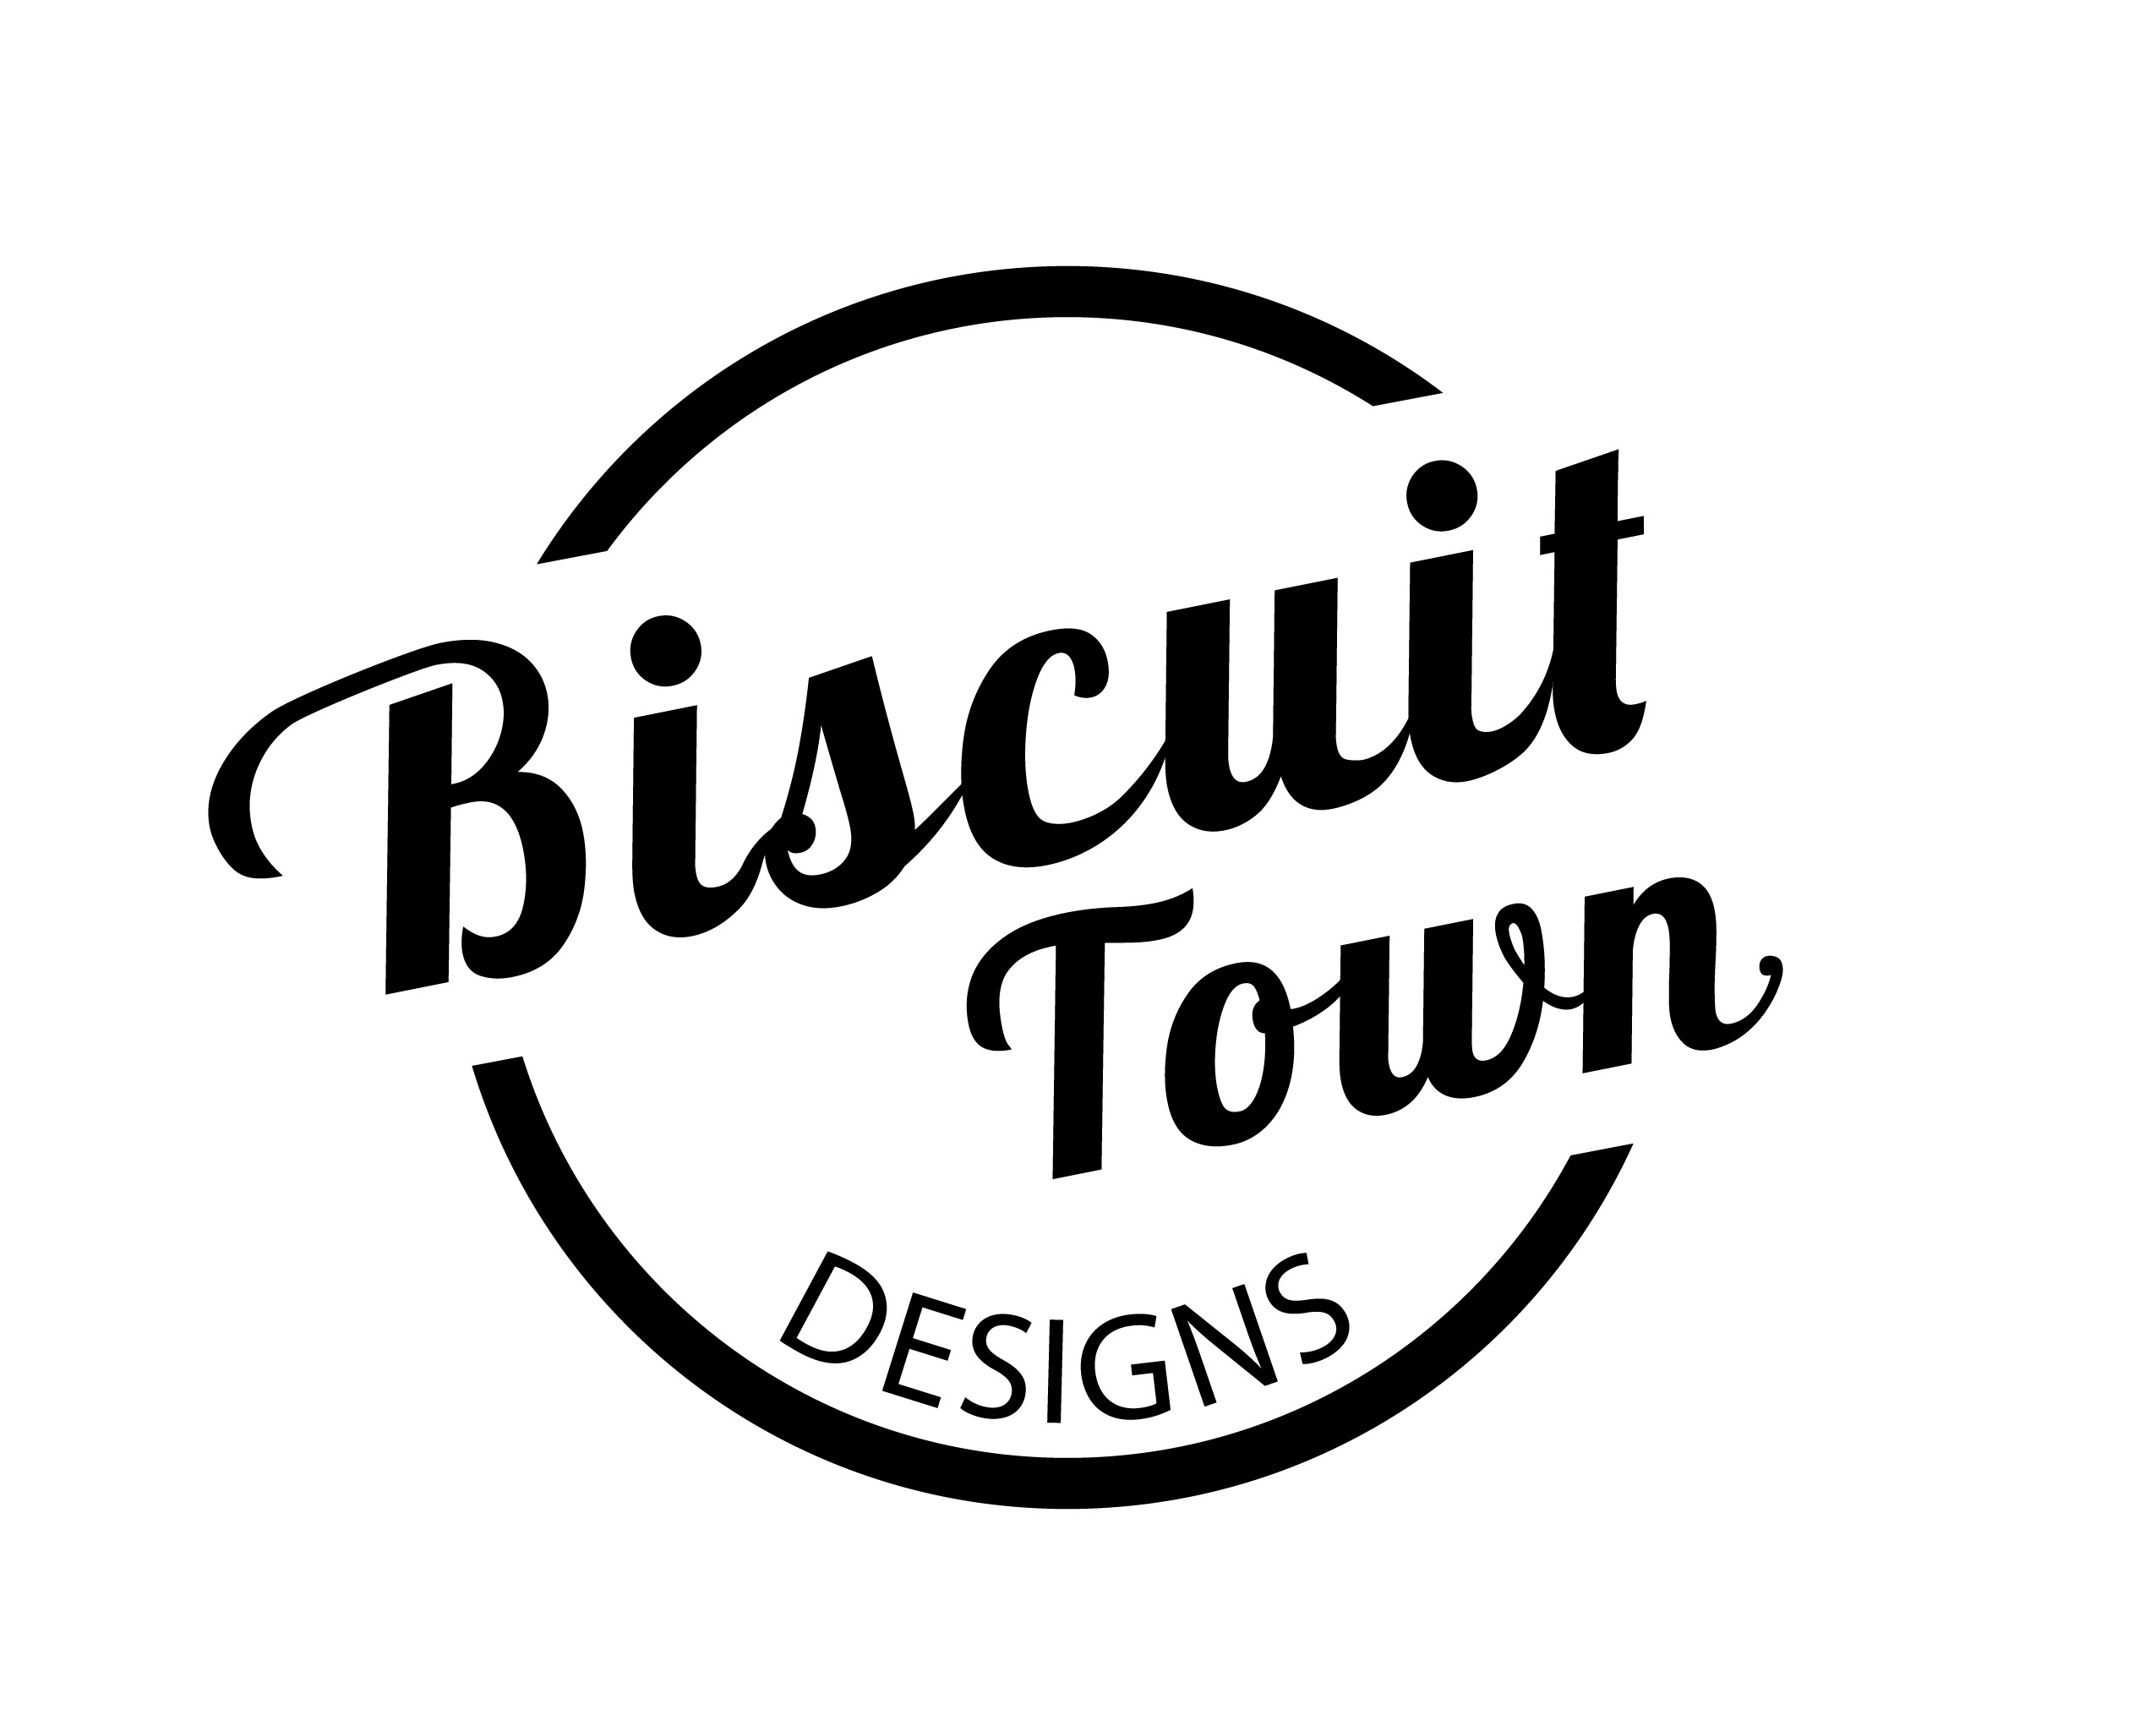 Biscuit Town Designs